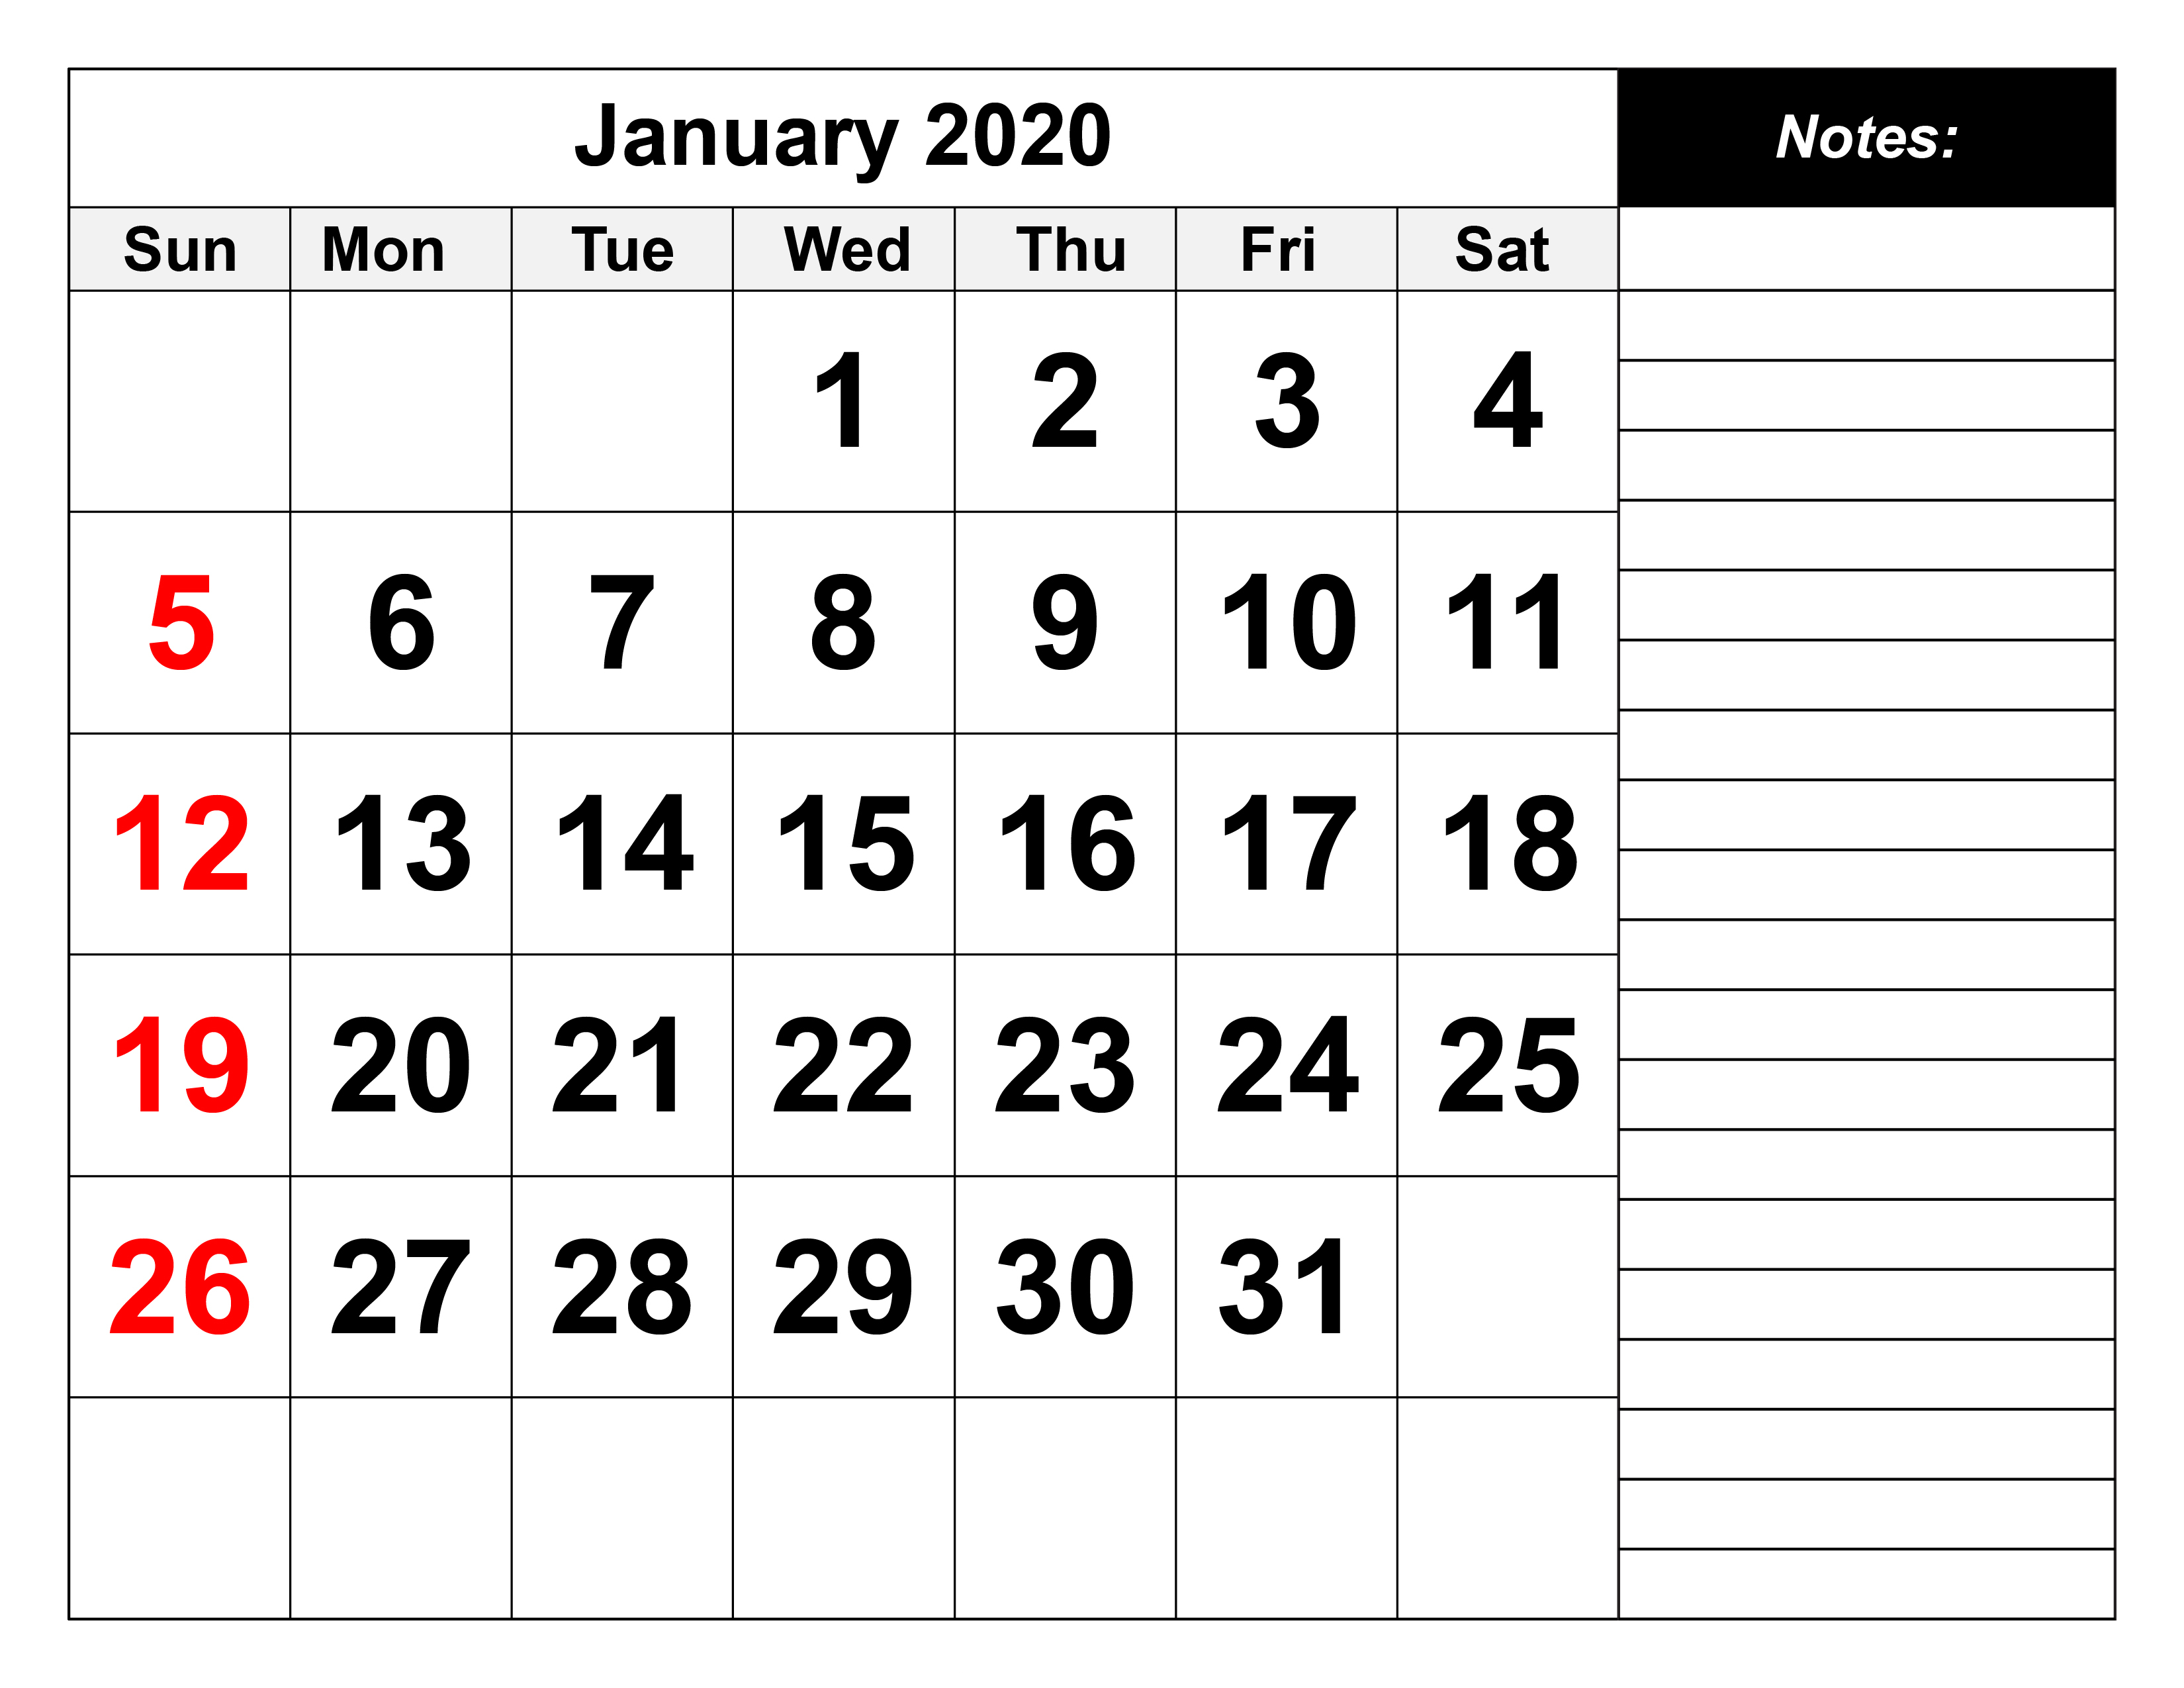 January 2020 Calendar Of Public Holidays | Office Holidays